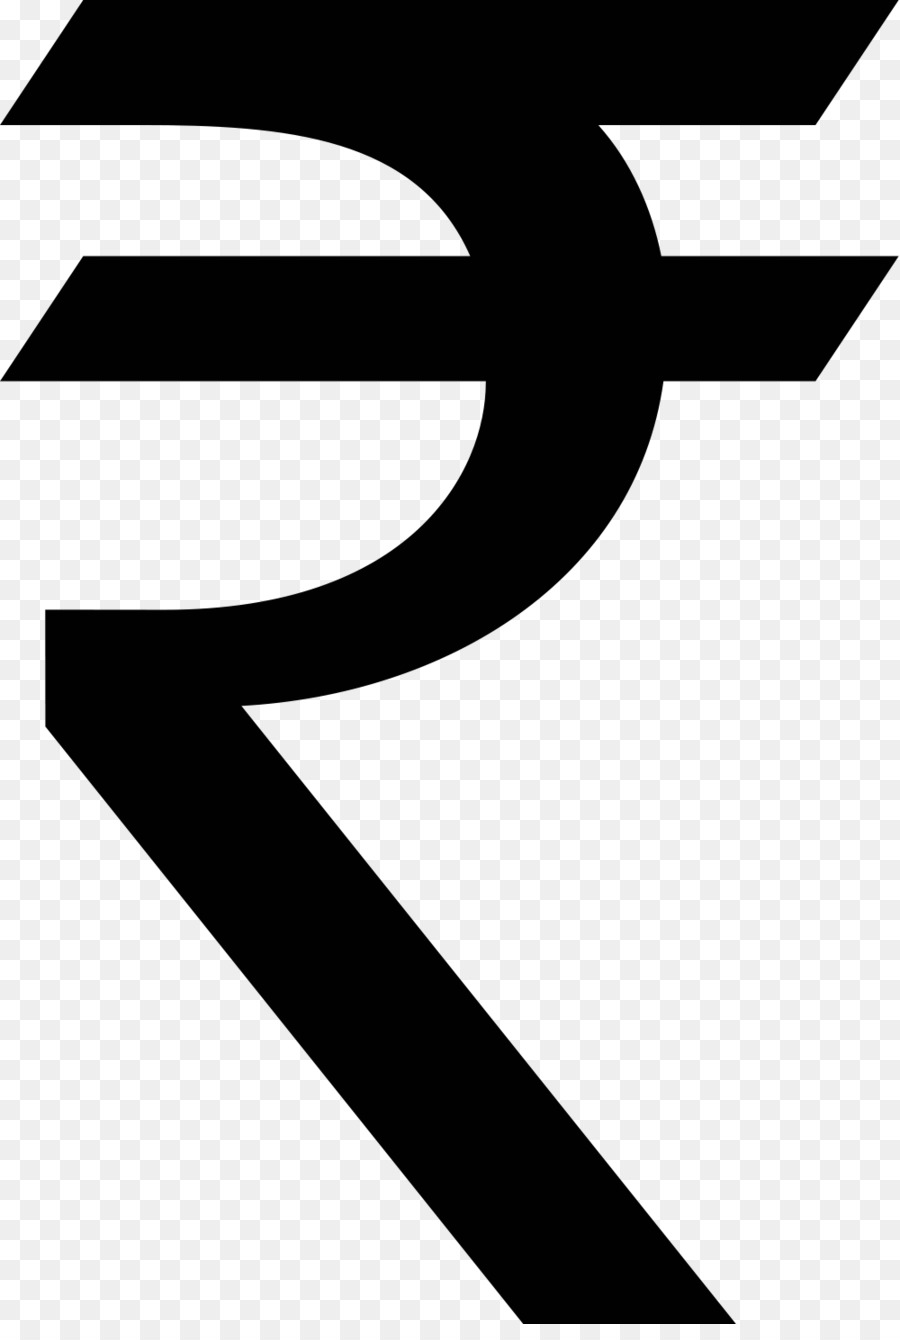 Indian Rupee Sign Scalable Vector Graphics Rupees Symbol Clip Art